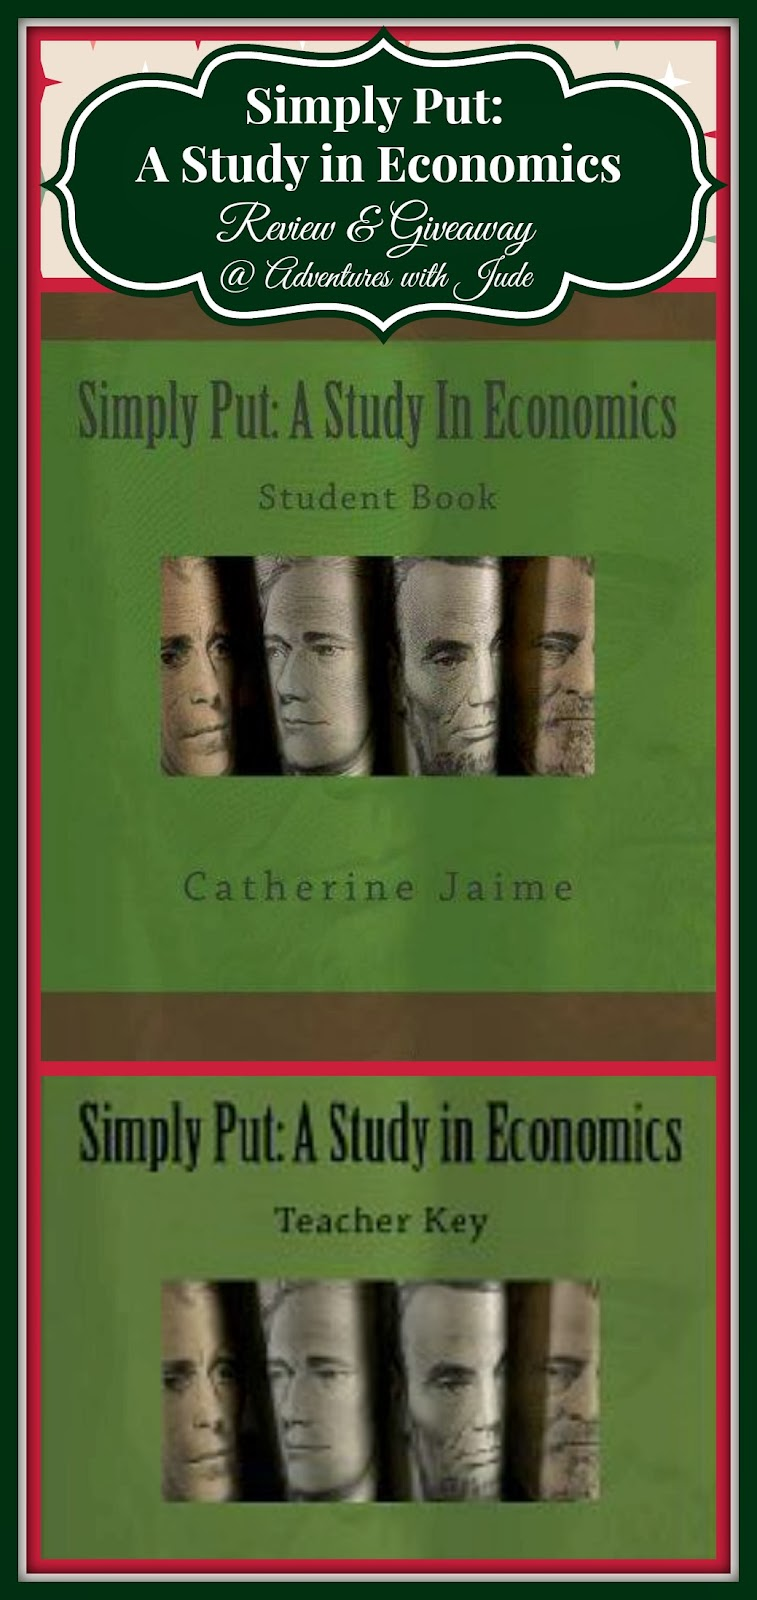 adventures with jude  simply put  a study in economics  a